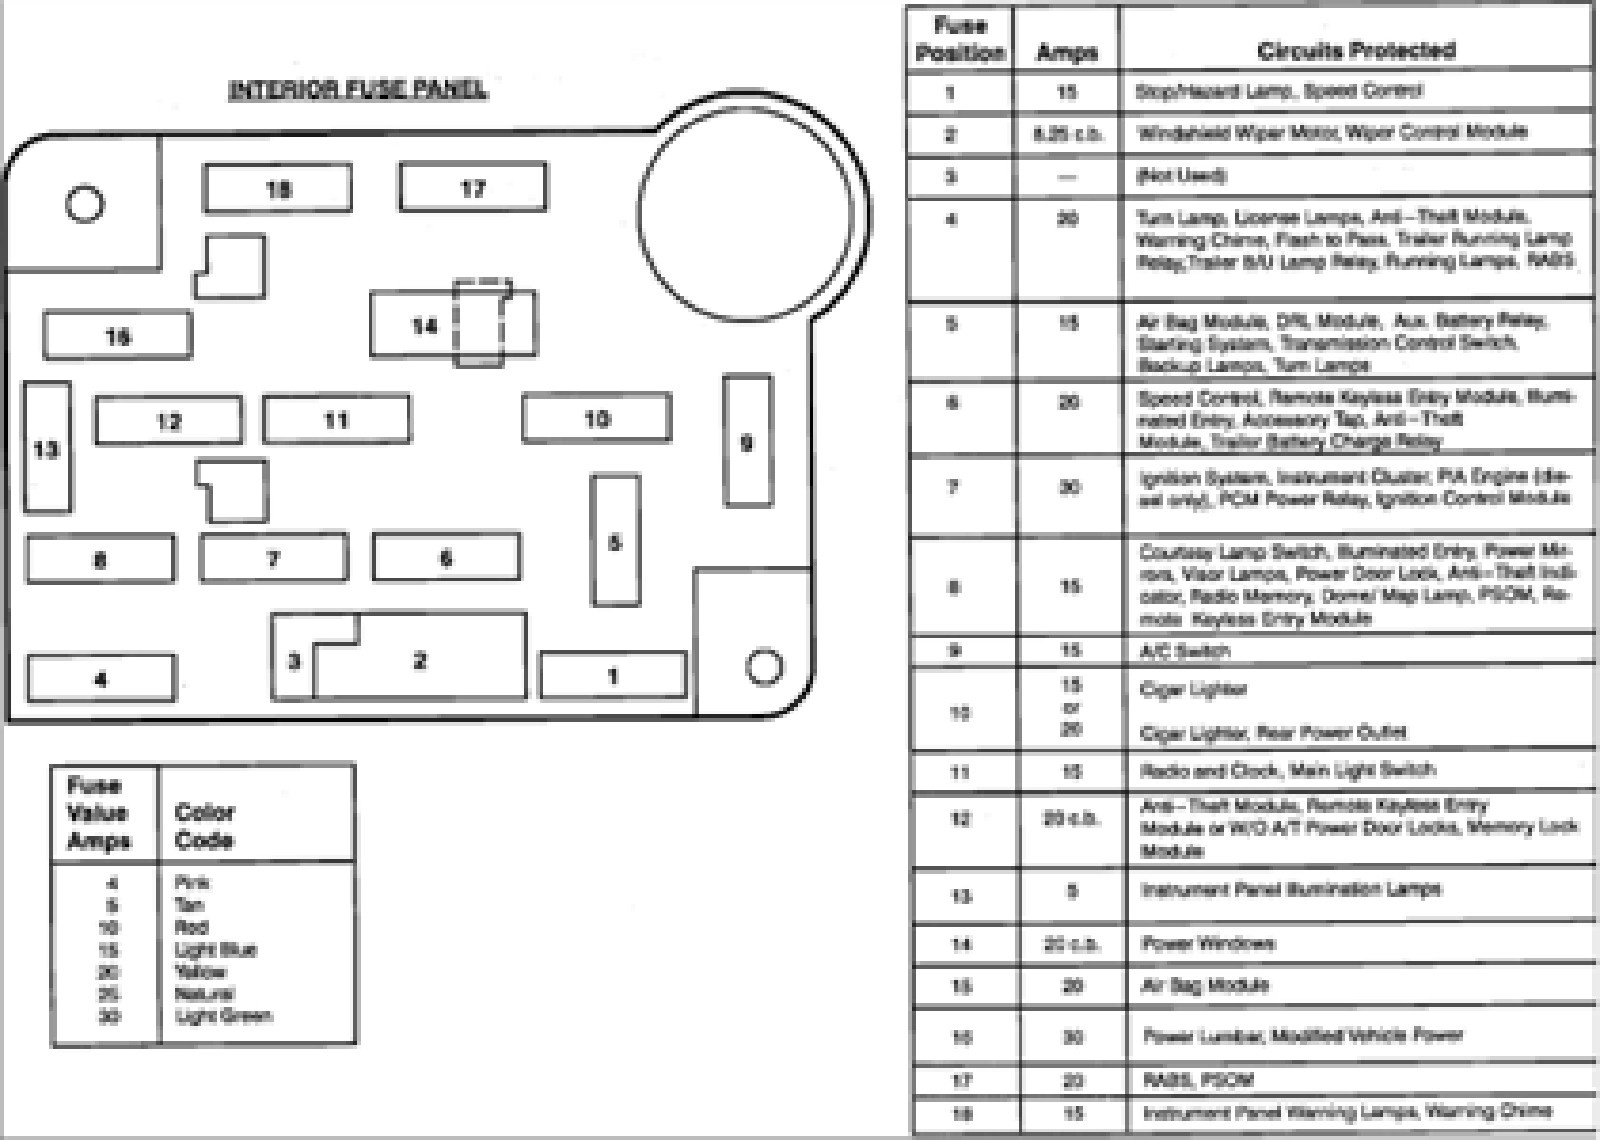 pic 8862473225641007897 1600x1200 93 ranger fuse box diagram 1994 ford ranger fuse box location 1993 ford explorer fuse box diagram at virtualis.co